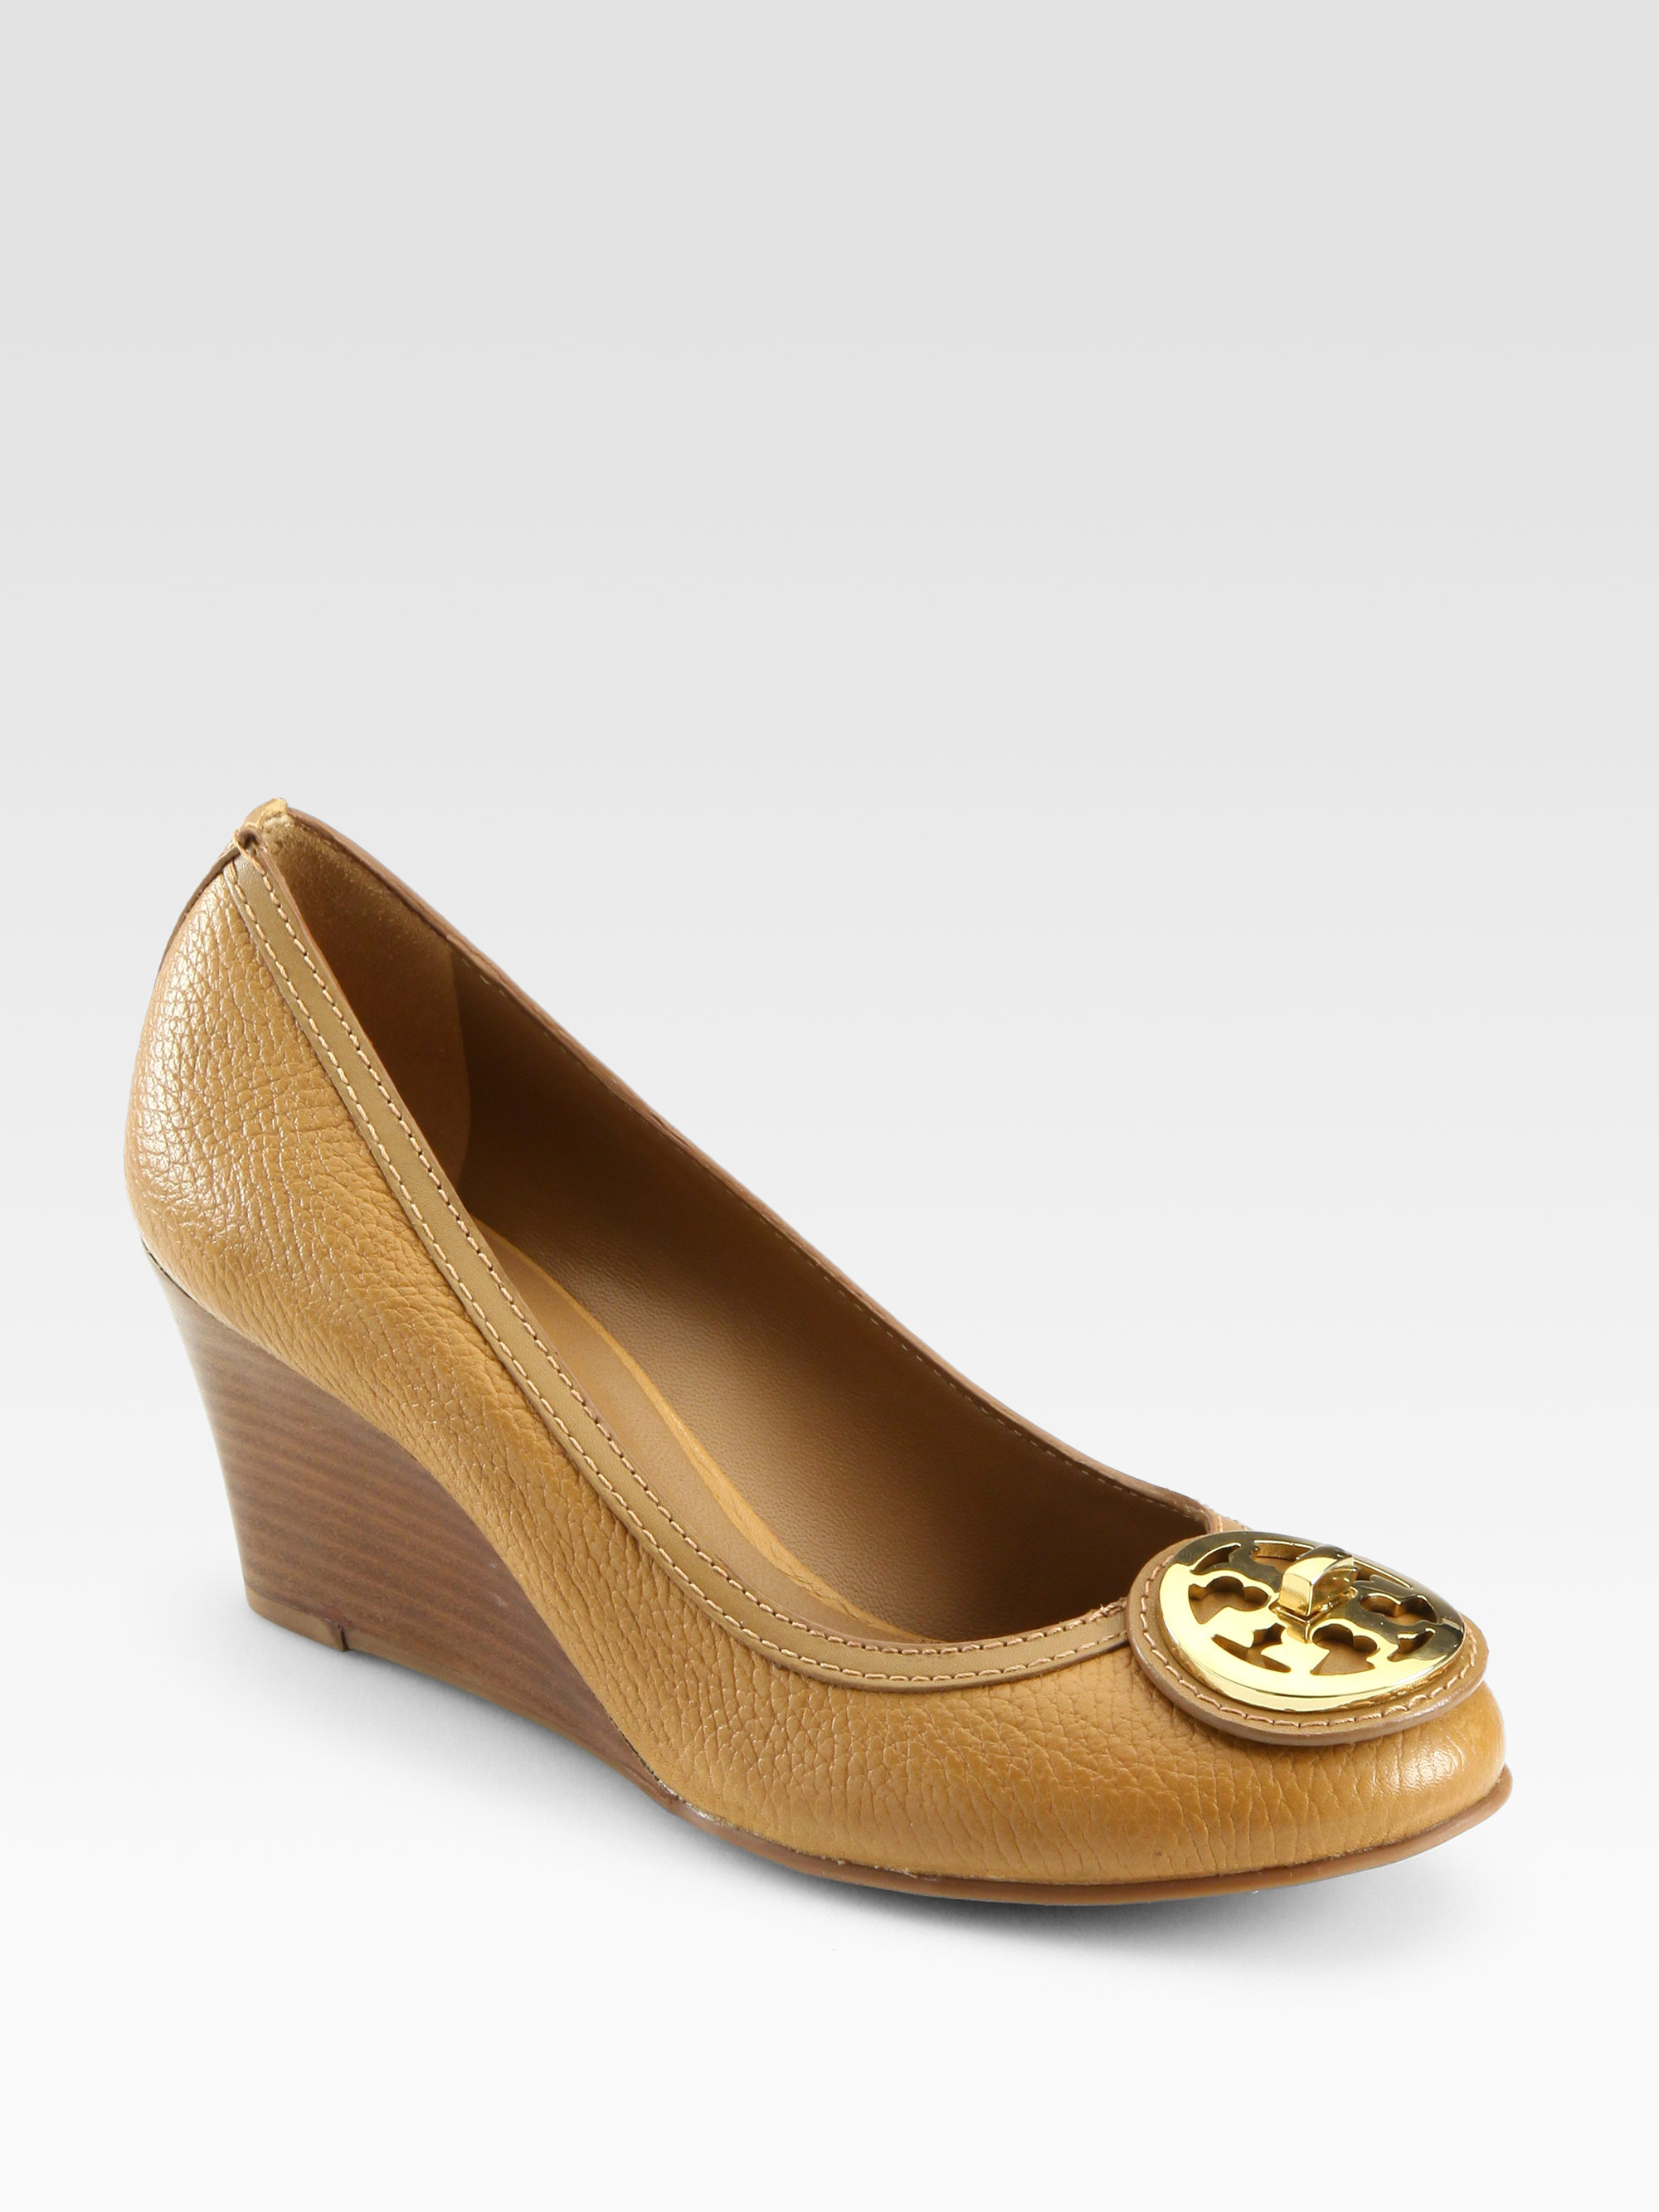 e668c0f2a36c Lyst - Tory Burch Selma Leather Wedge Pumps in Brown